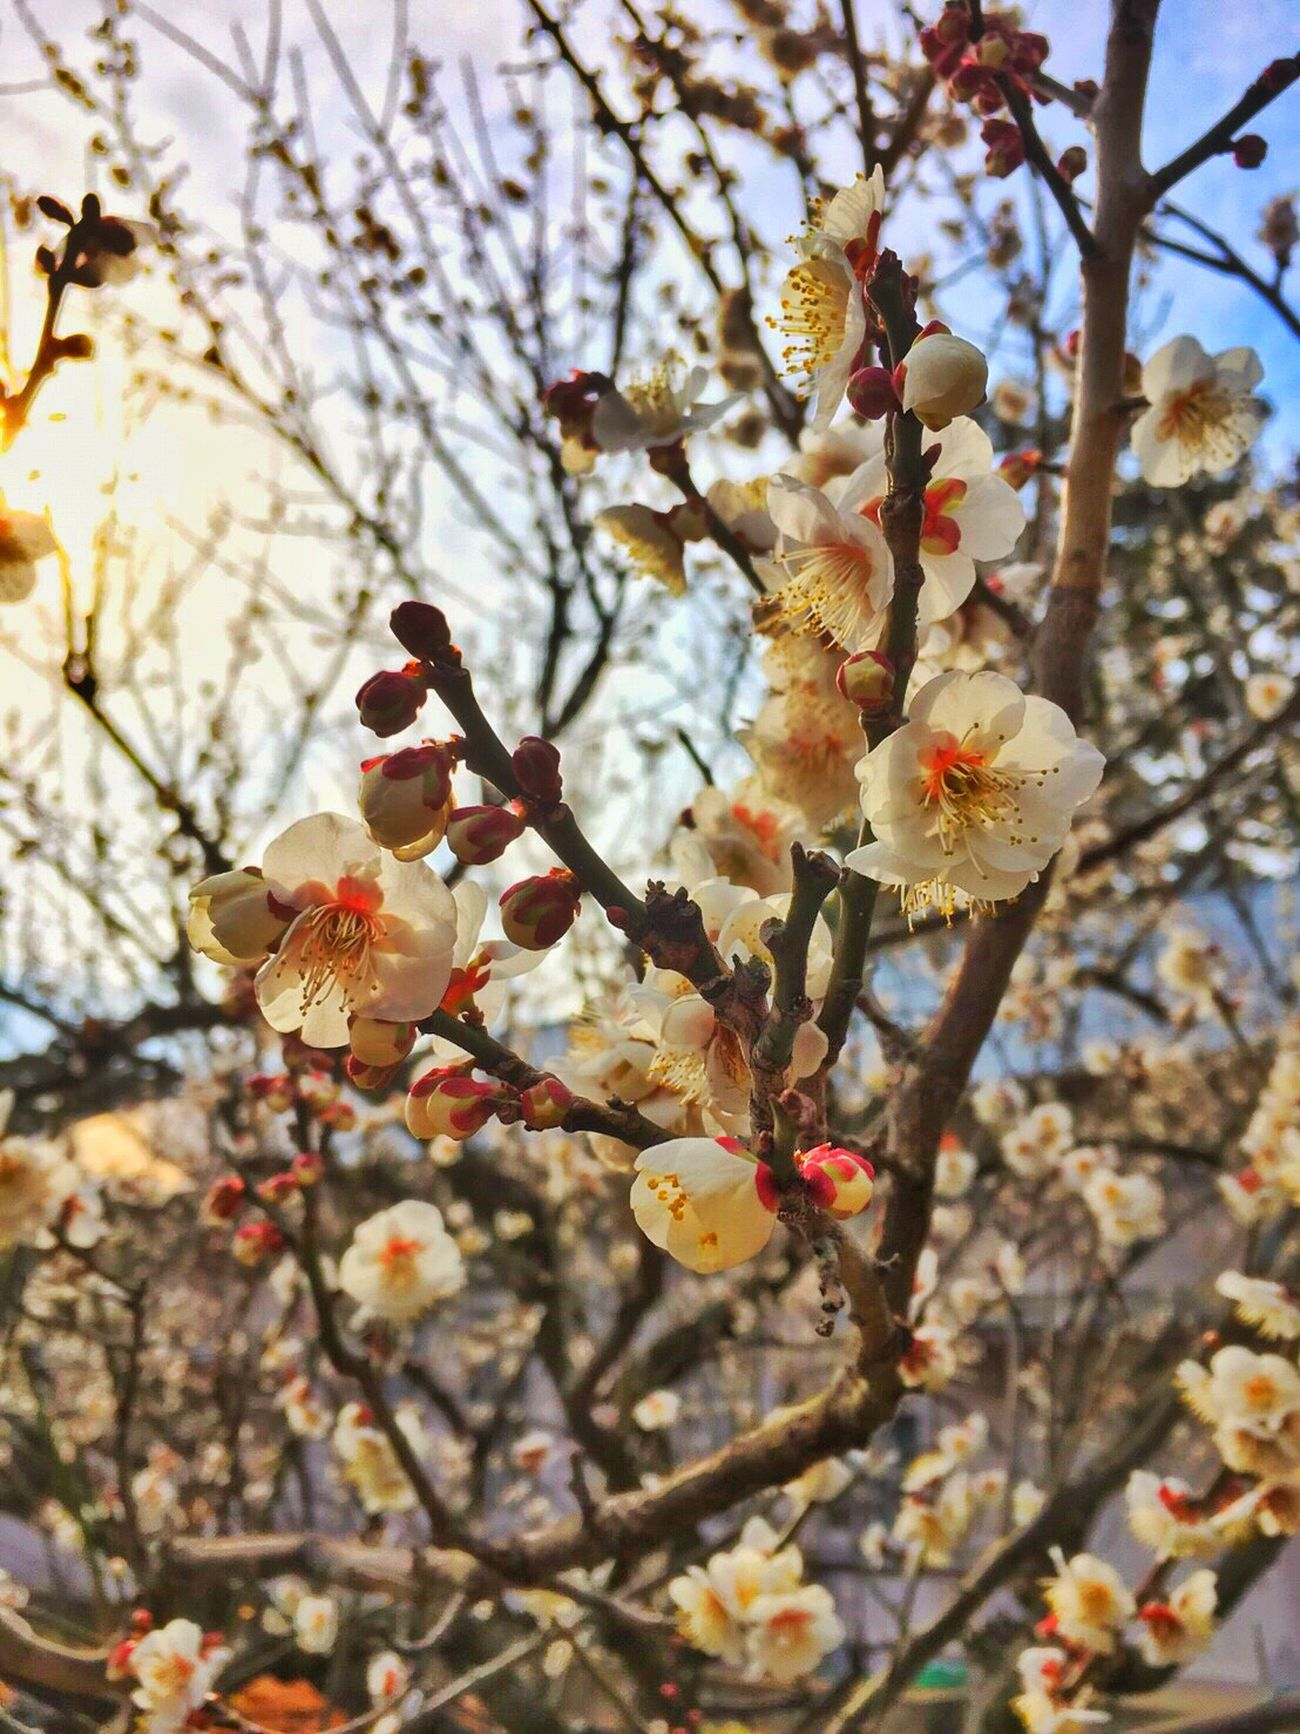 Odawara Flower Ume Blossom Japanese Apricot Nature Tree Plum Blossom No People